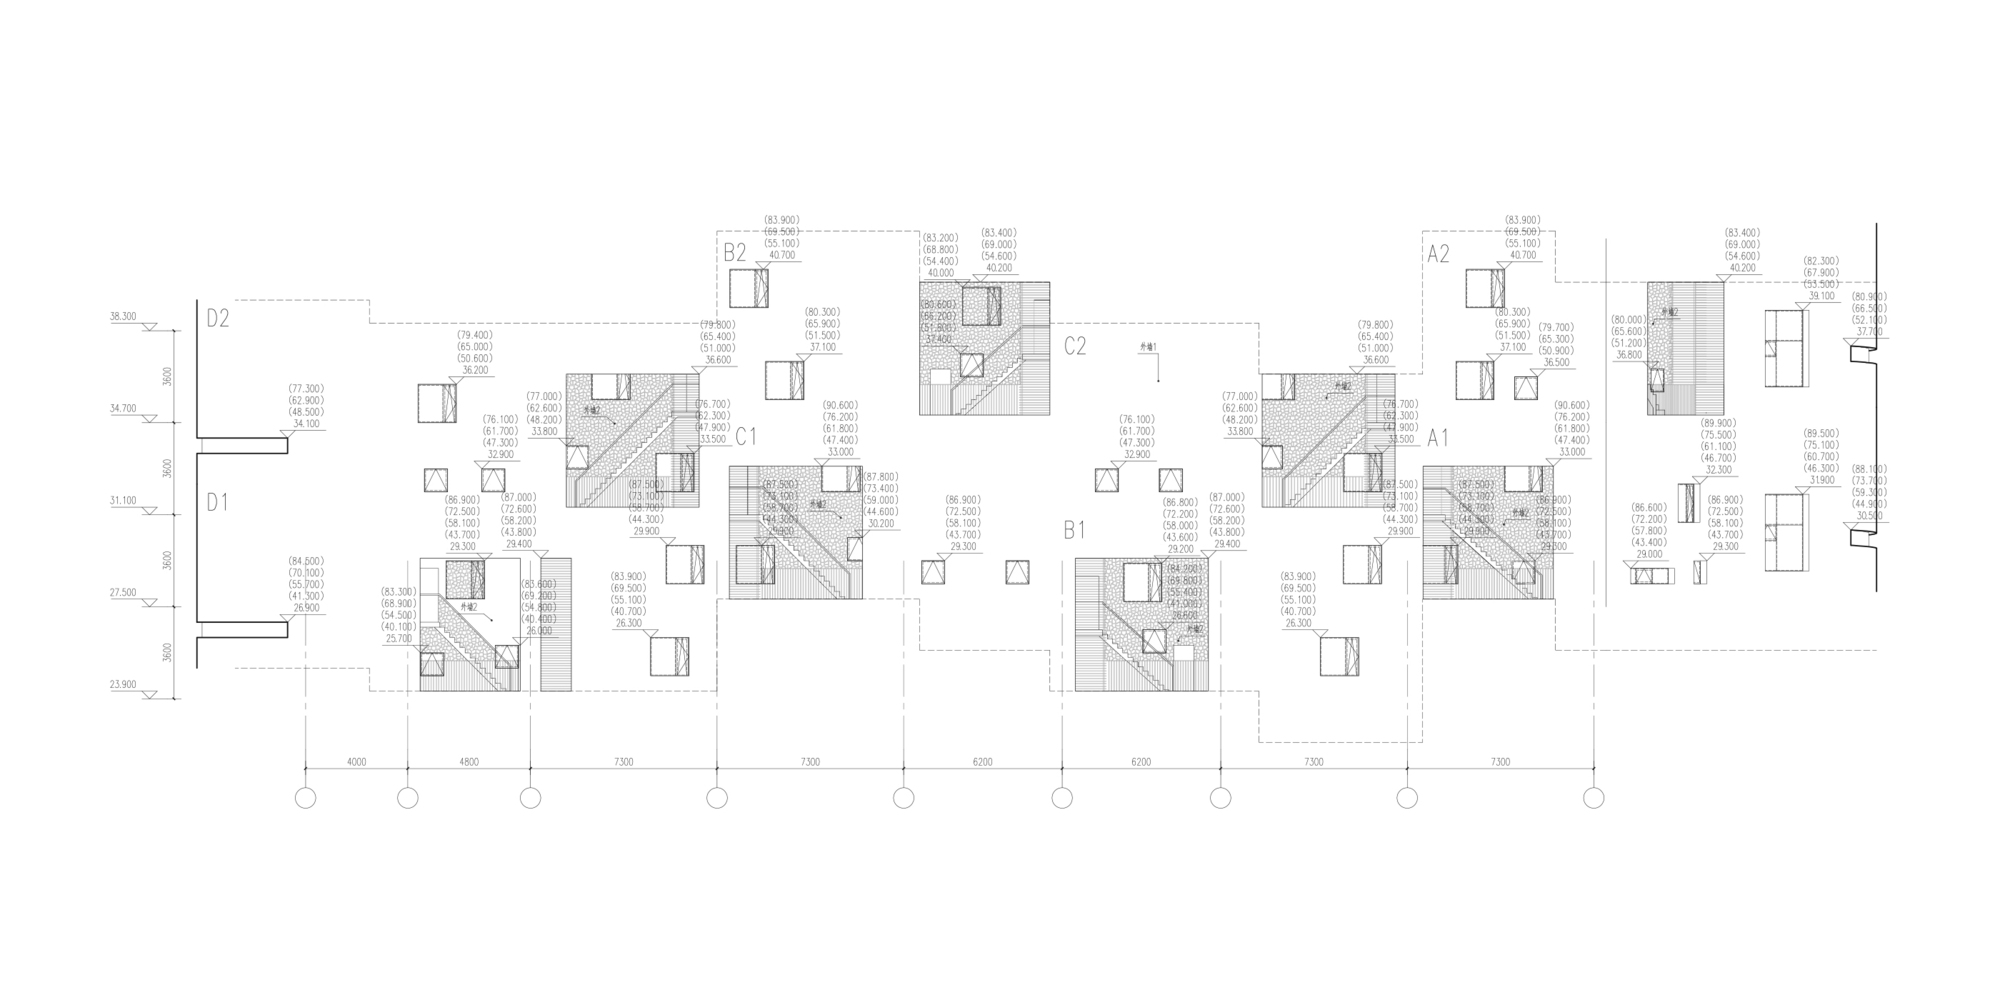 25_北立面局部放大图(复式单元错层错位分布)detail_of_north_elevation_(the_split-leveled_and_staggered_layout_of_duplex_units).jpg